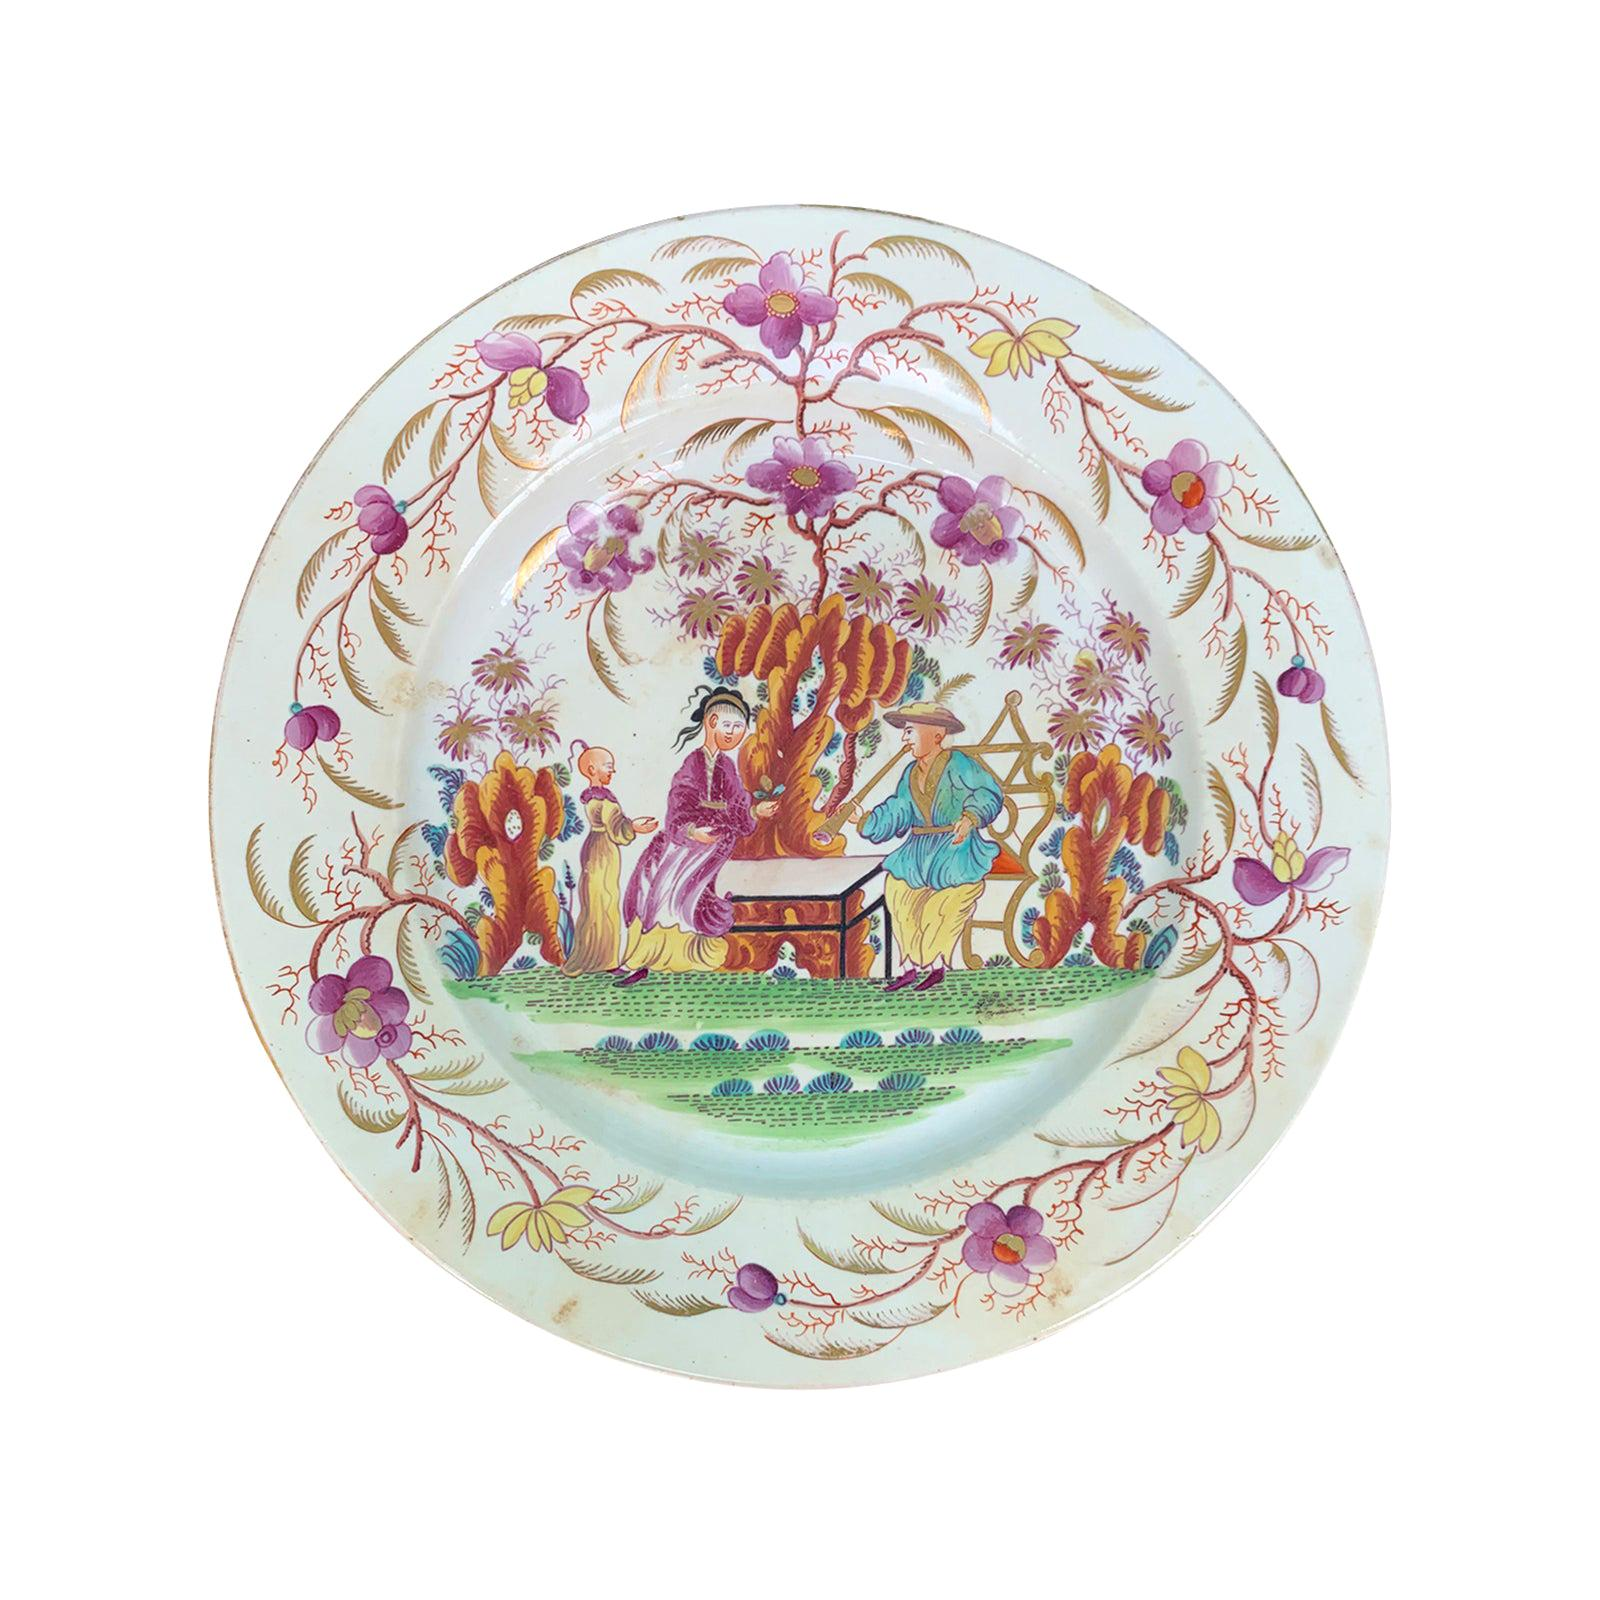 18th Century English Porcelain Plate, Possibly New Hall